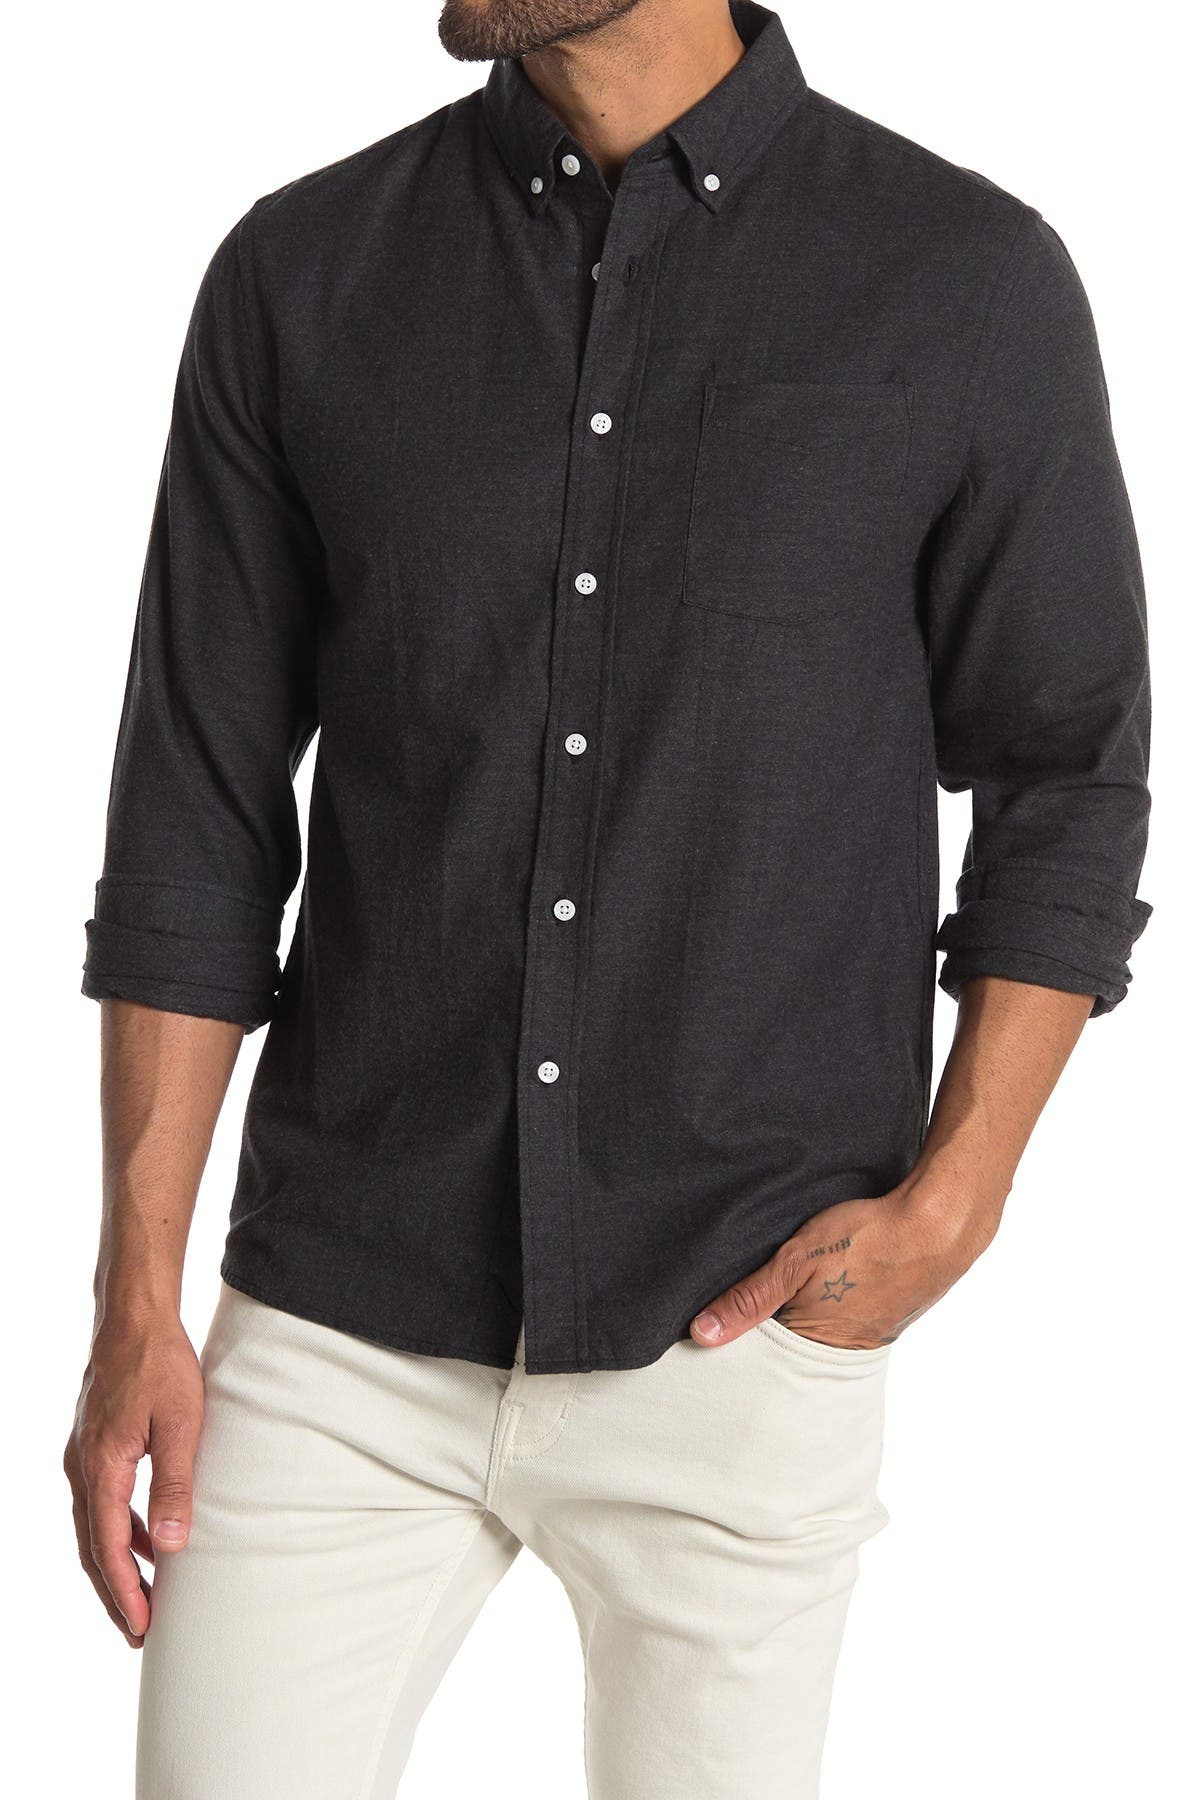 Image of SATURDAYS NYC Crosy Flannel Oxford Shirt